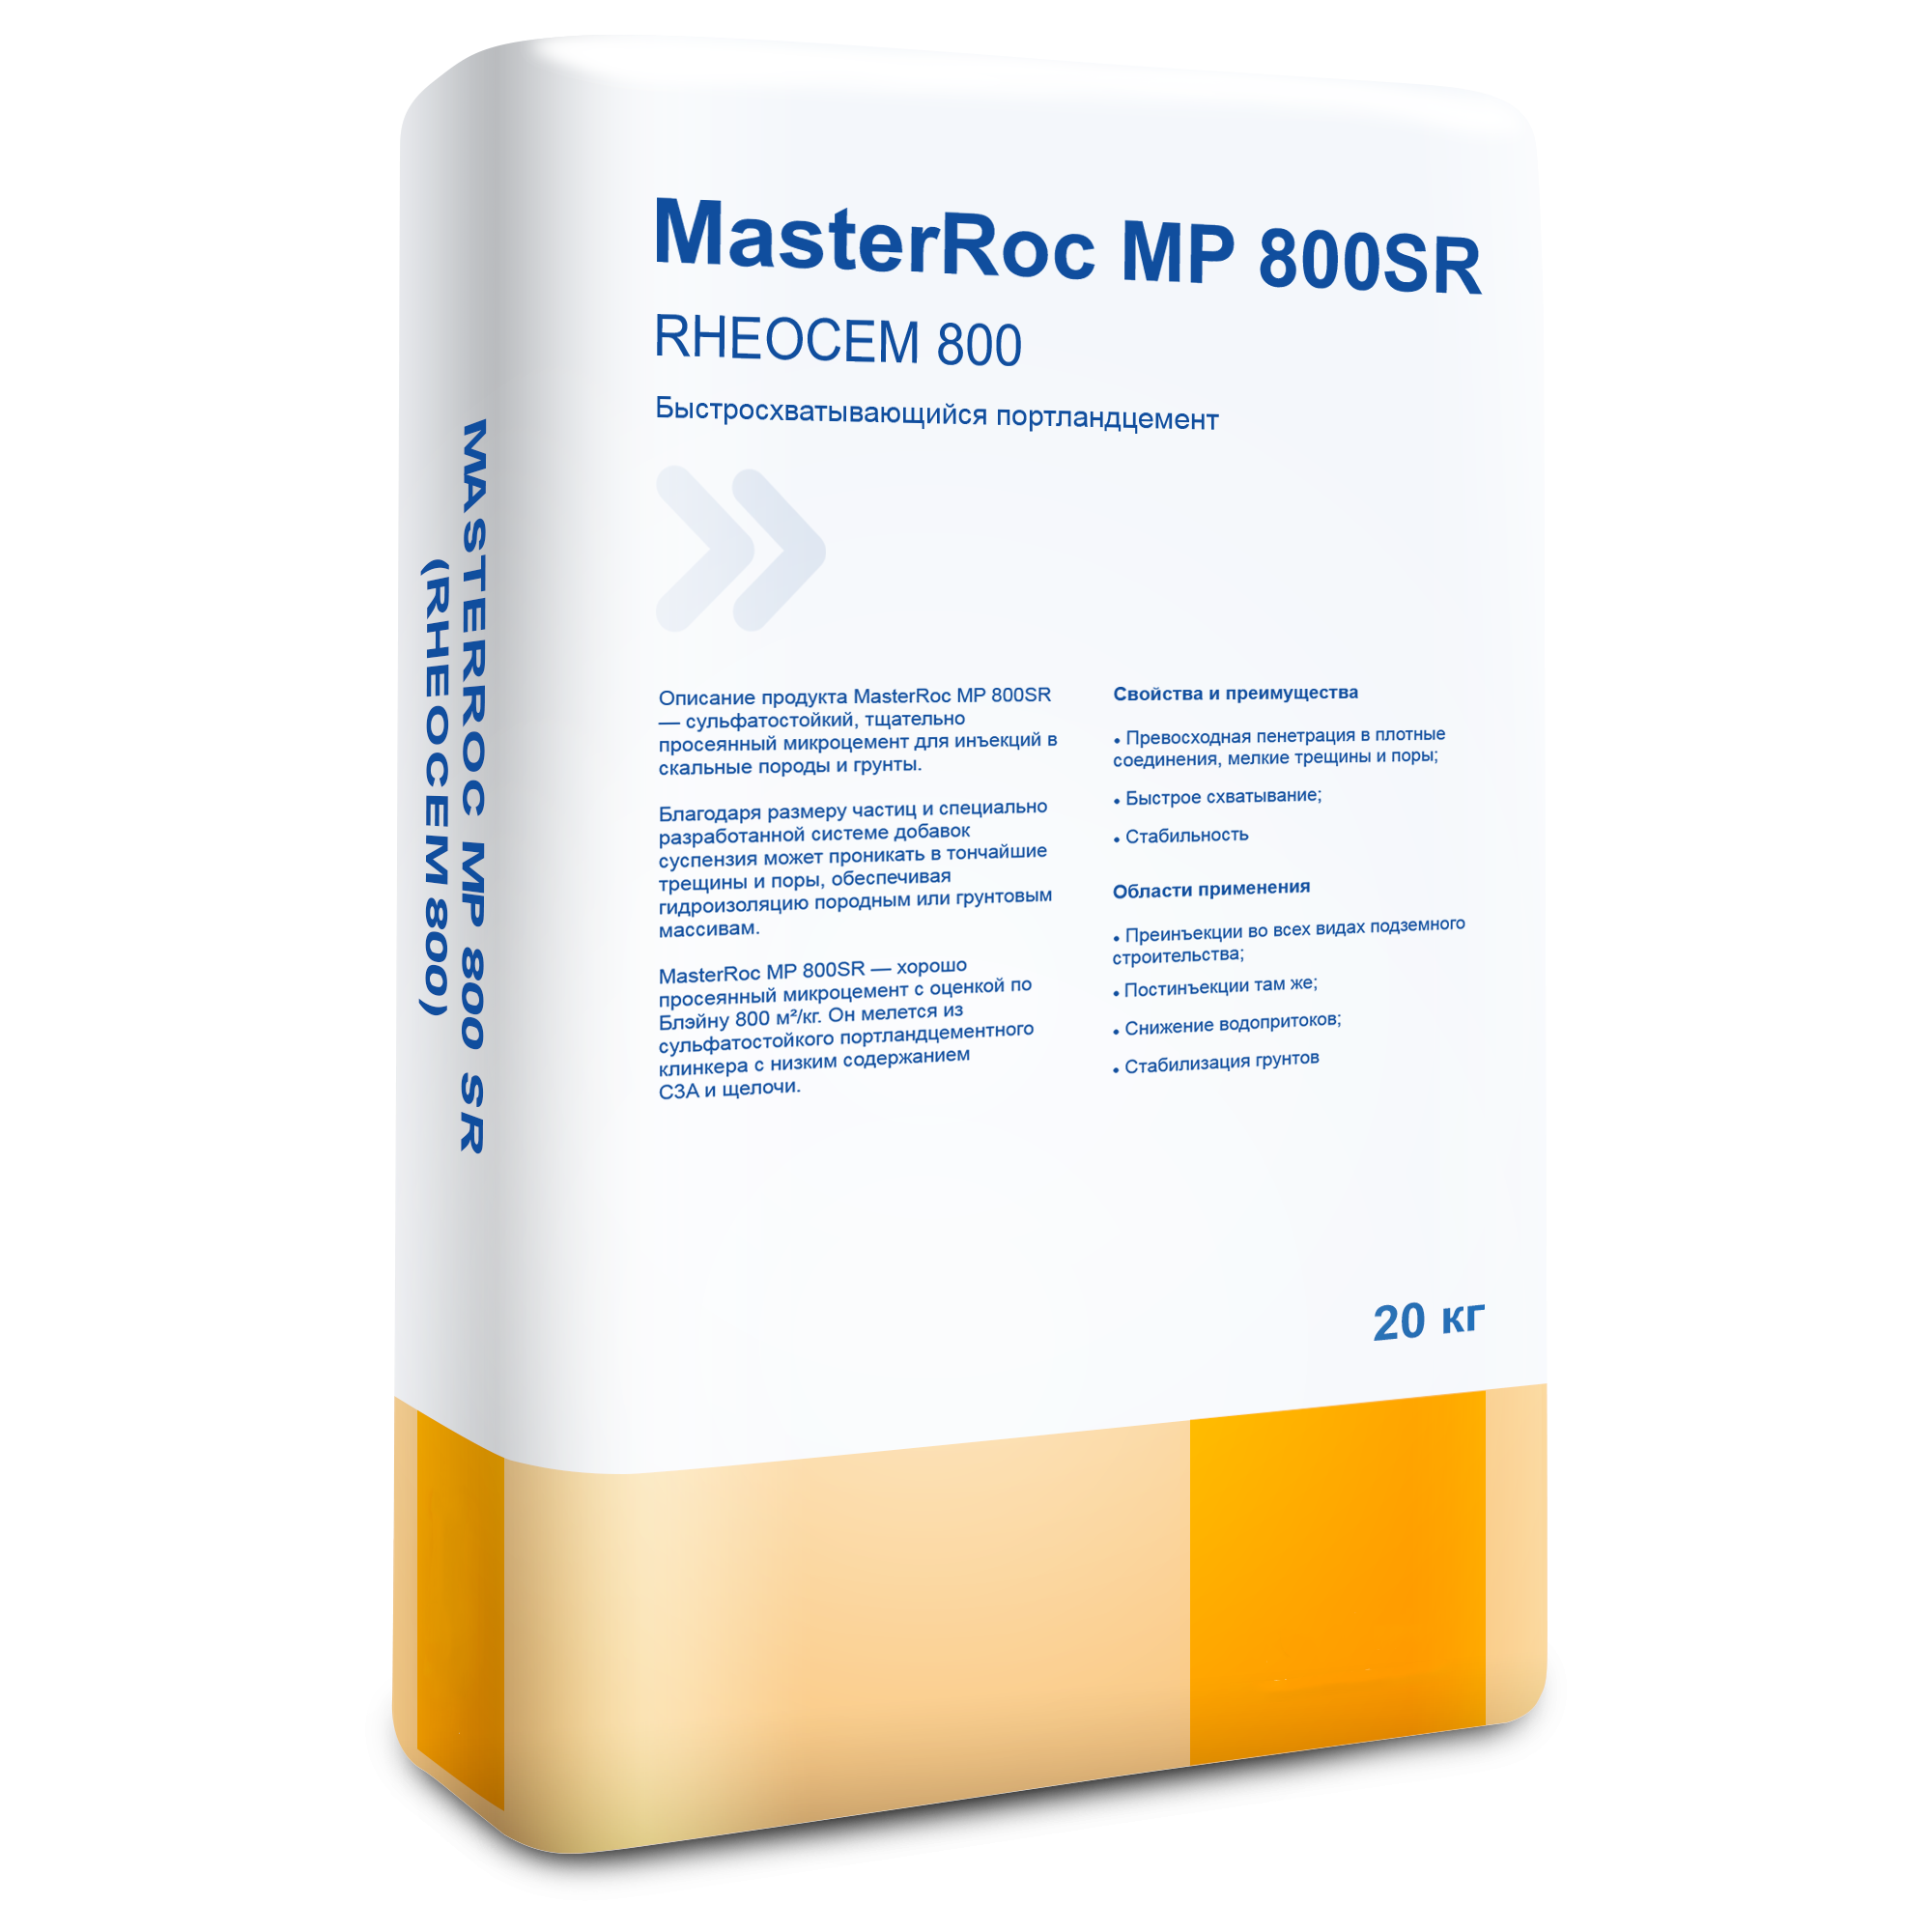 MasterRoc MP 800 SR